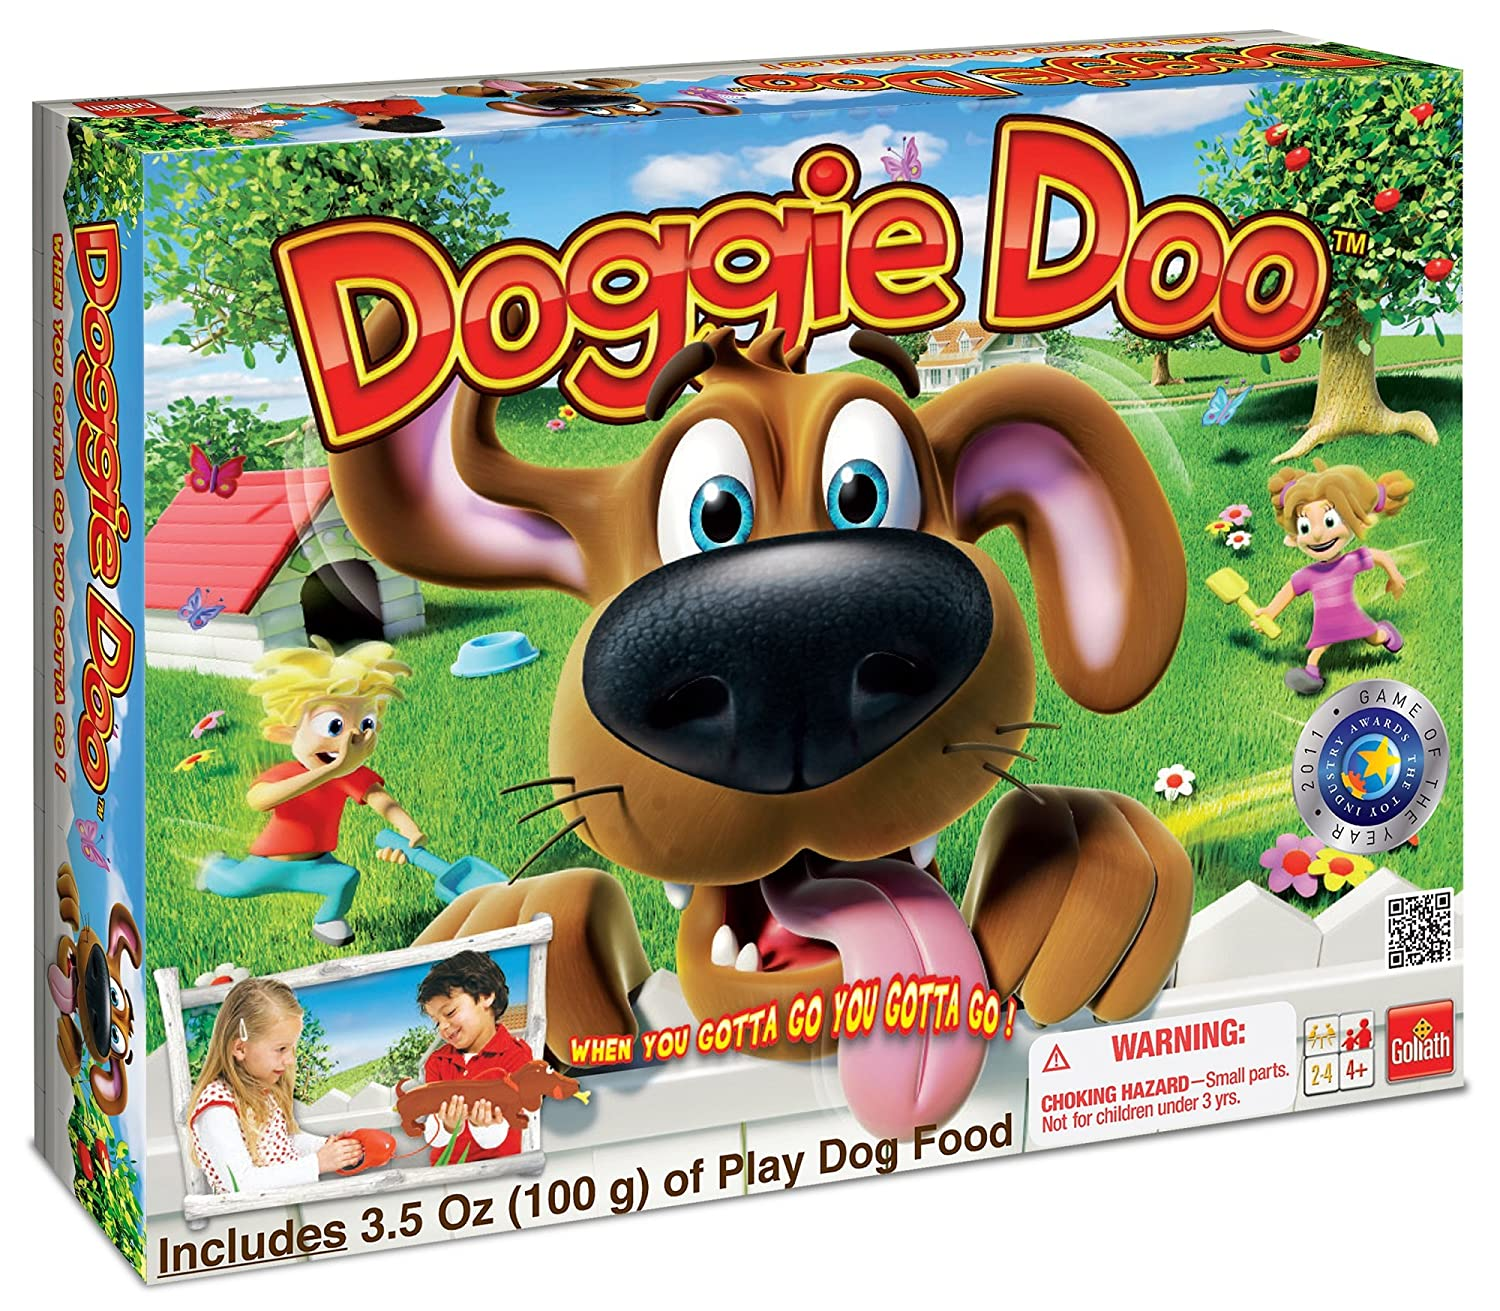 c07e52a59636 Amazon.com  Doggie Doo -- The Famous Dog Poop Game  Toys   Games